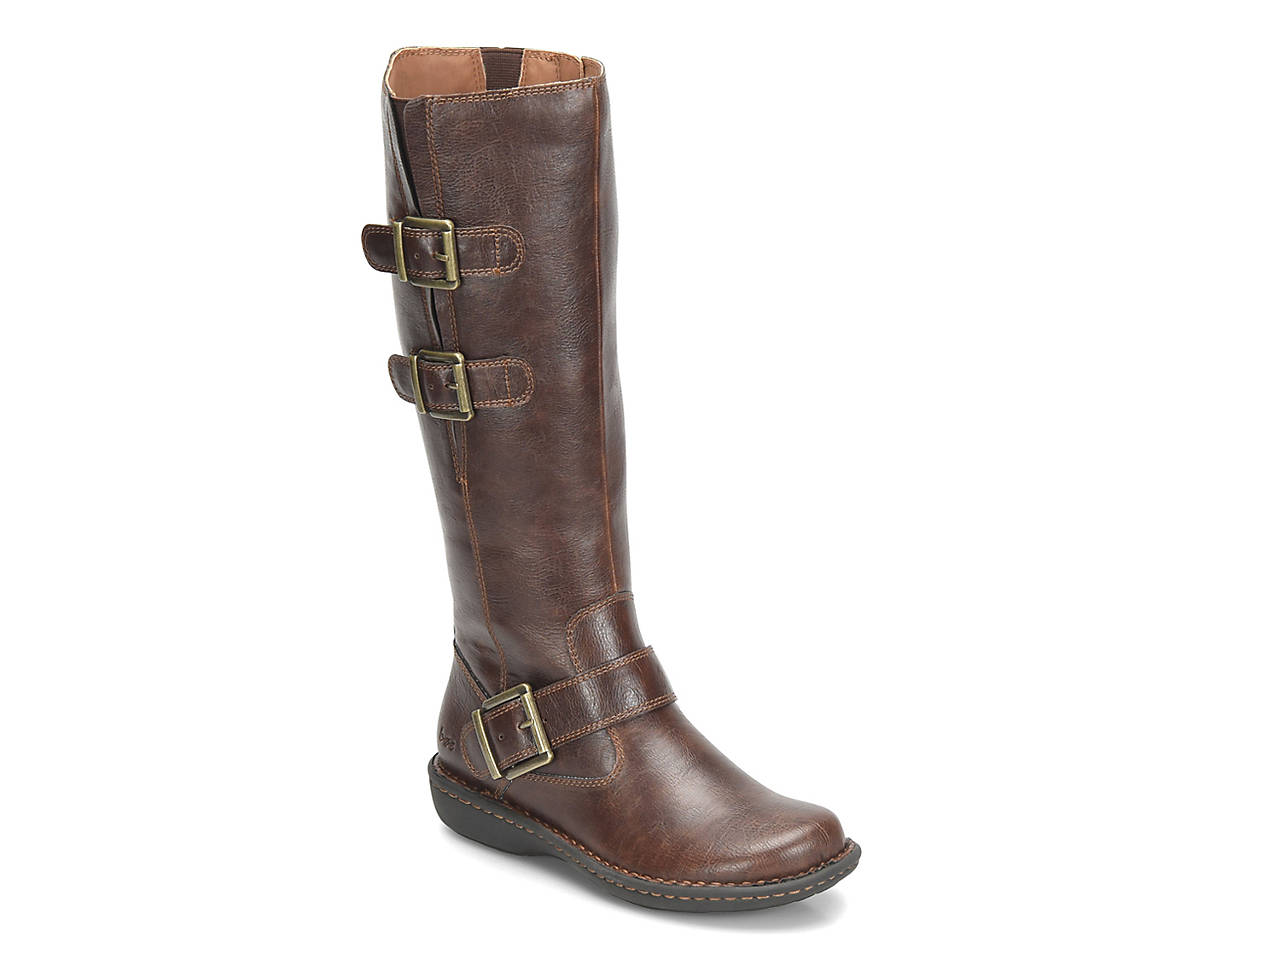 Women's B.O.C. Virginia Riding Boots sale fake 2015 sale online 3SdanM